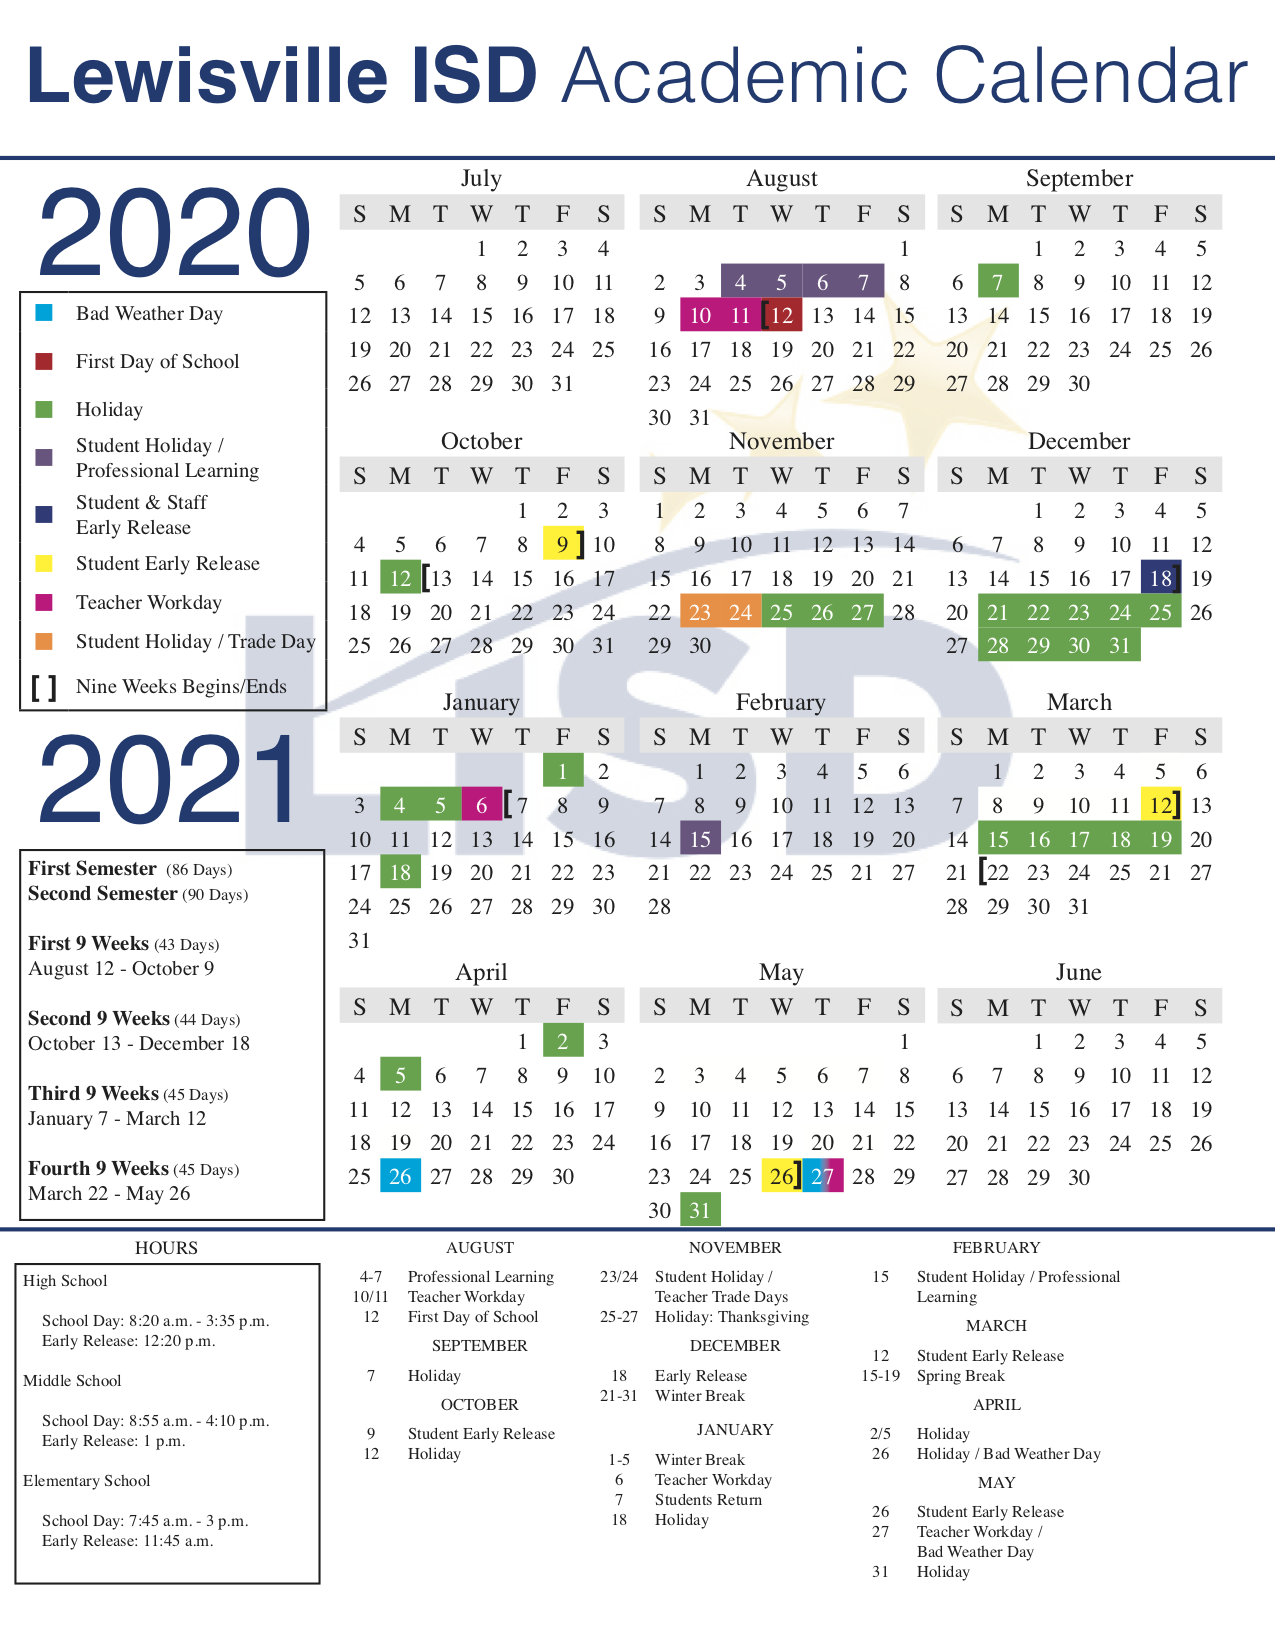 Lisd Approves 2020-21 Academic Calendar intended for Francis Lewis High School 2021 Calendar